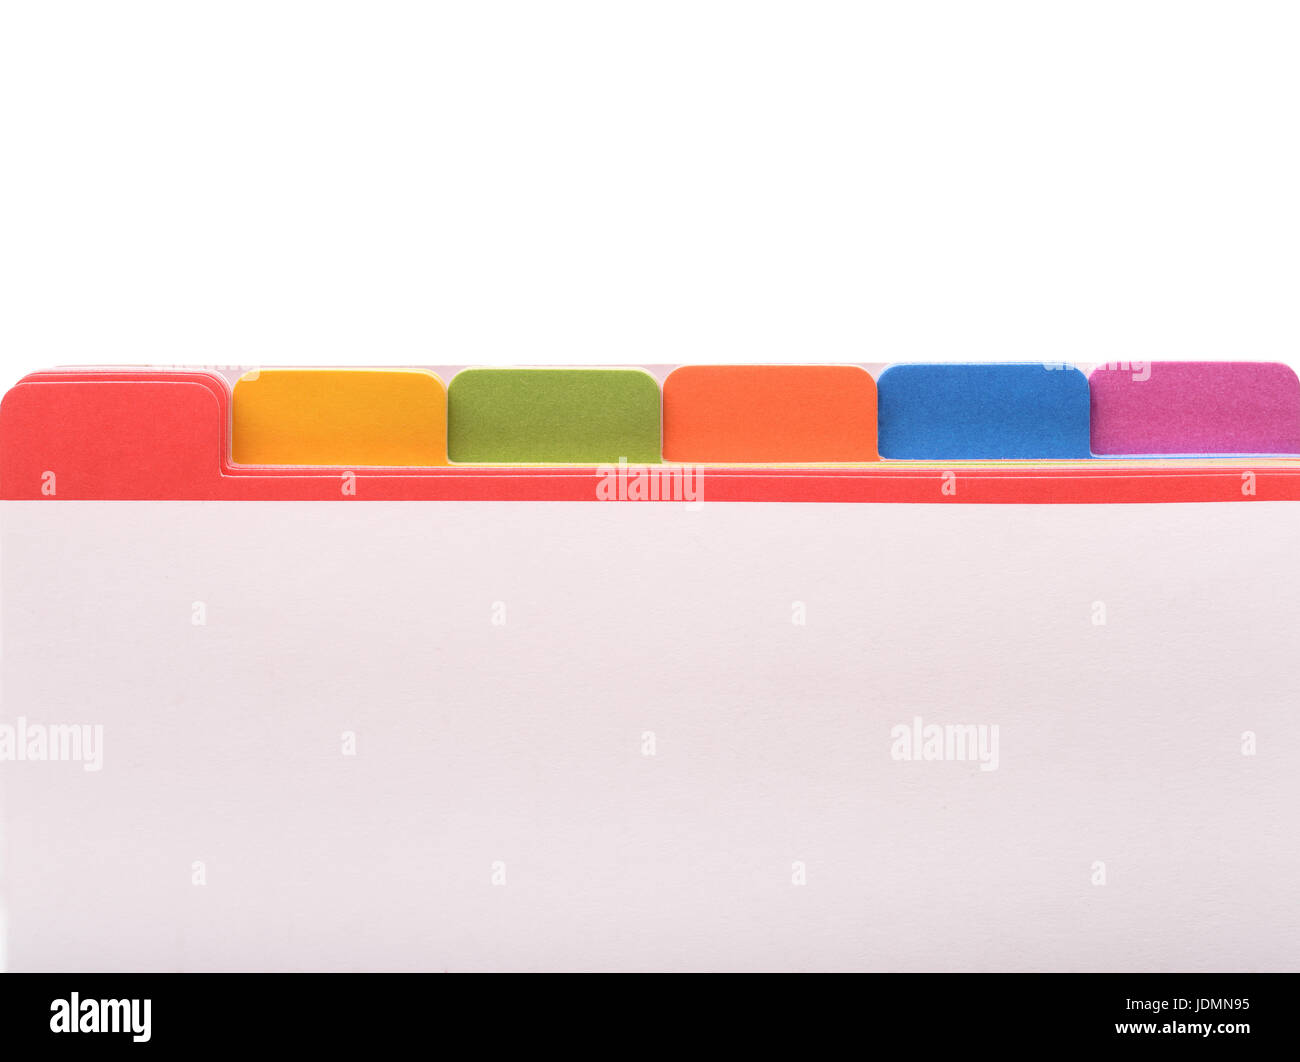 File folder with color tags and blank space - Stock Image